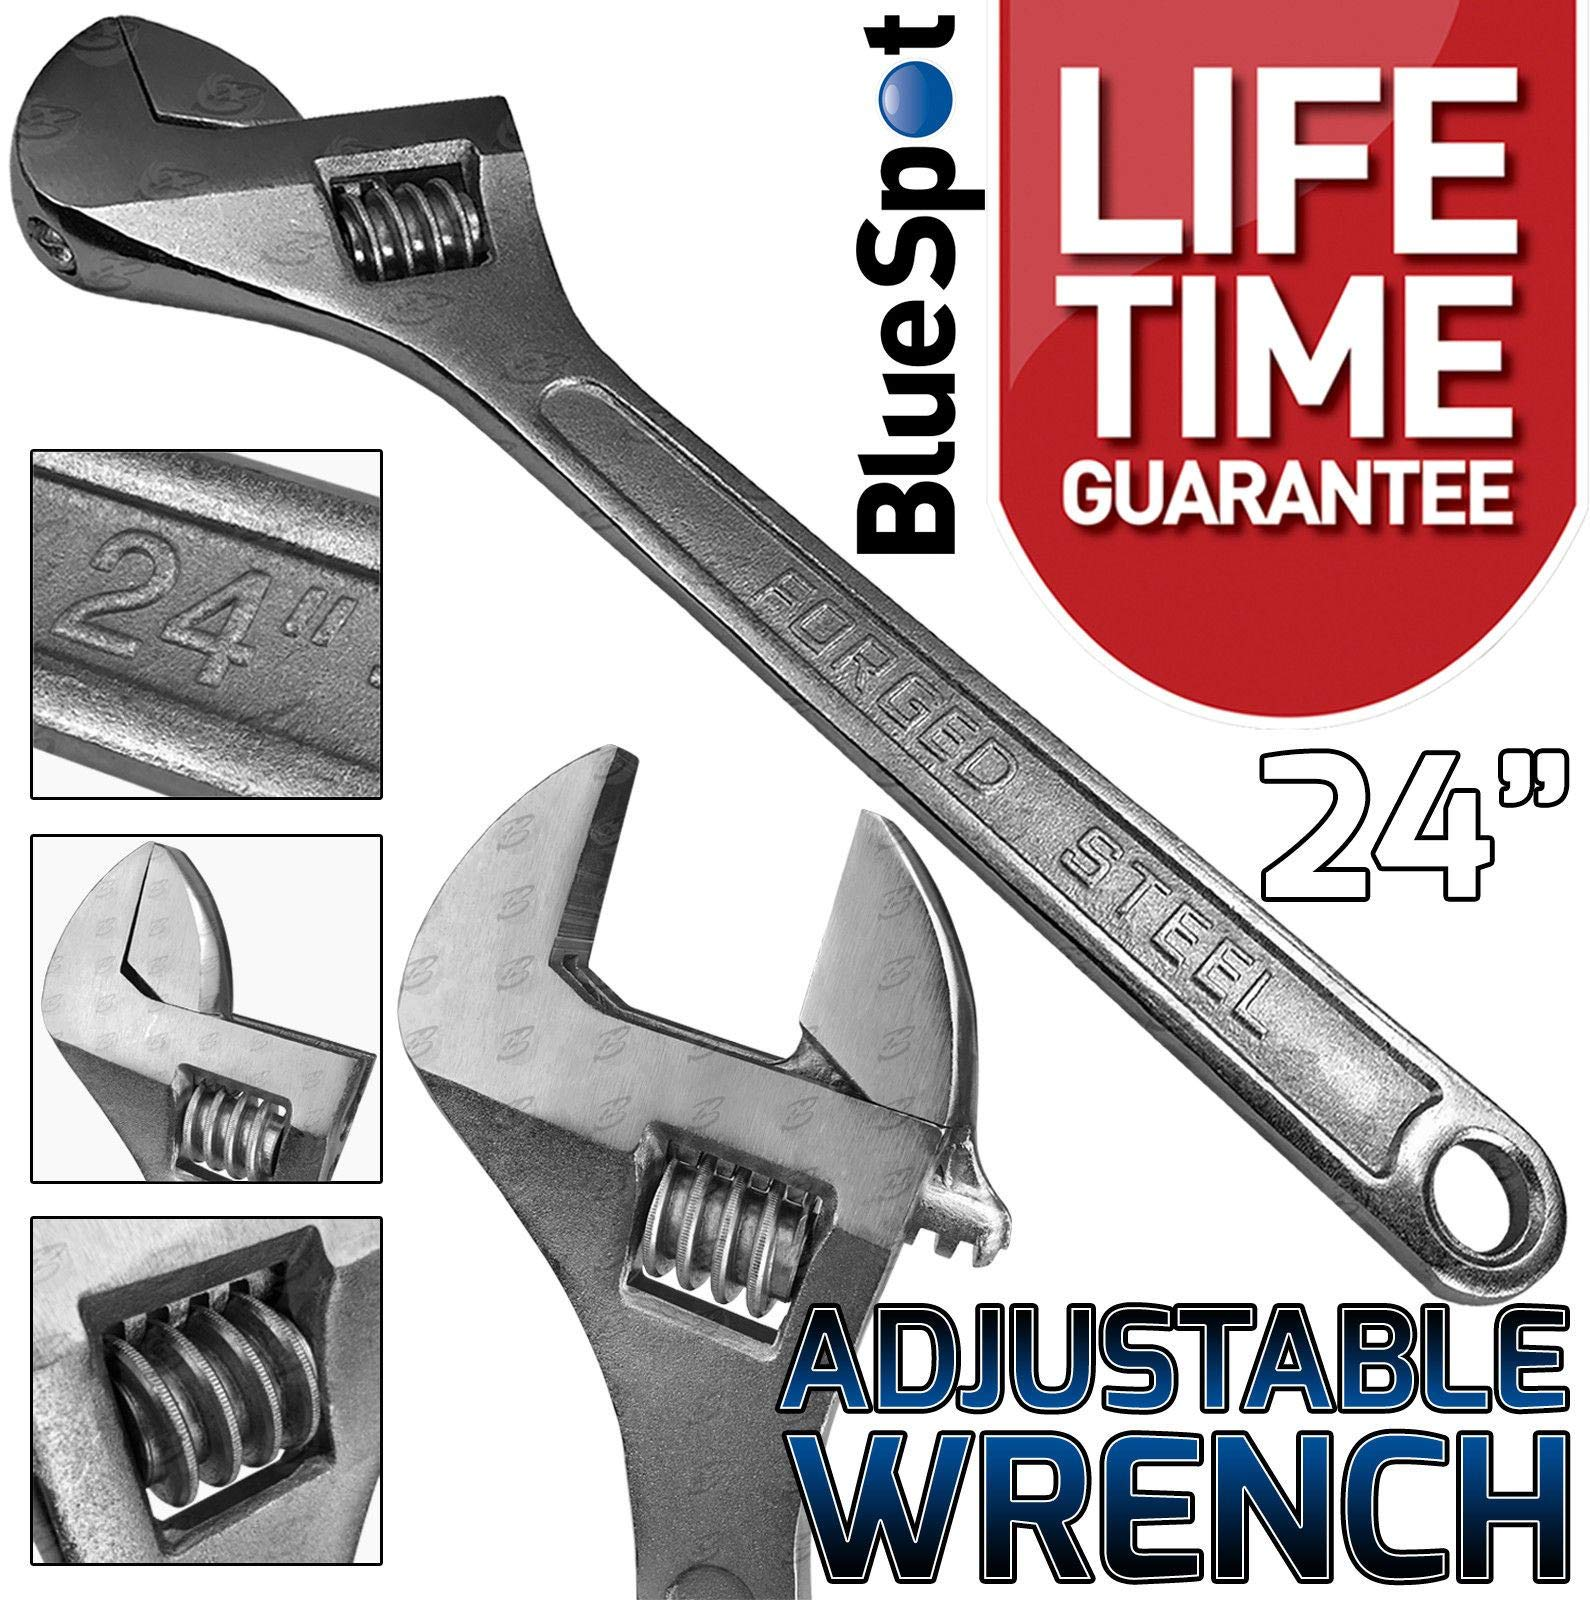 Silver Nifogo Adjustable Wrench Spanner 6-68mm Spanner Short Shank Wrench Aluminum Alloy Repair Tools for Bathroom Tube Nut Disassembly